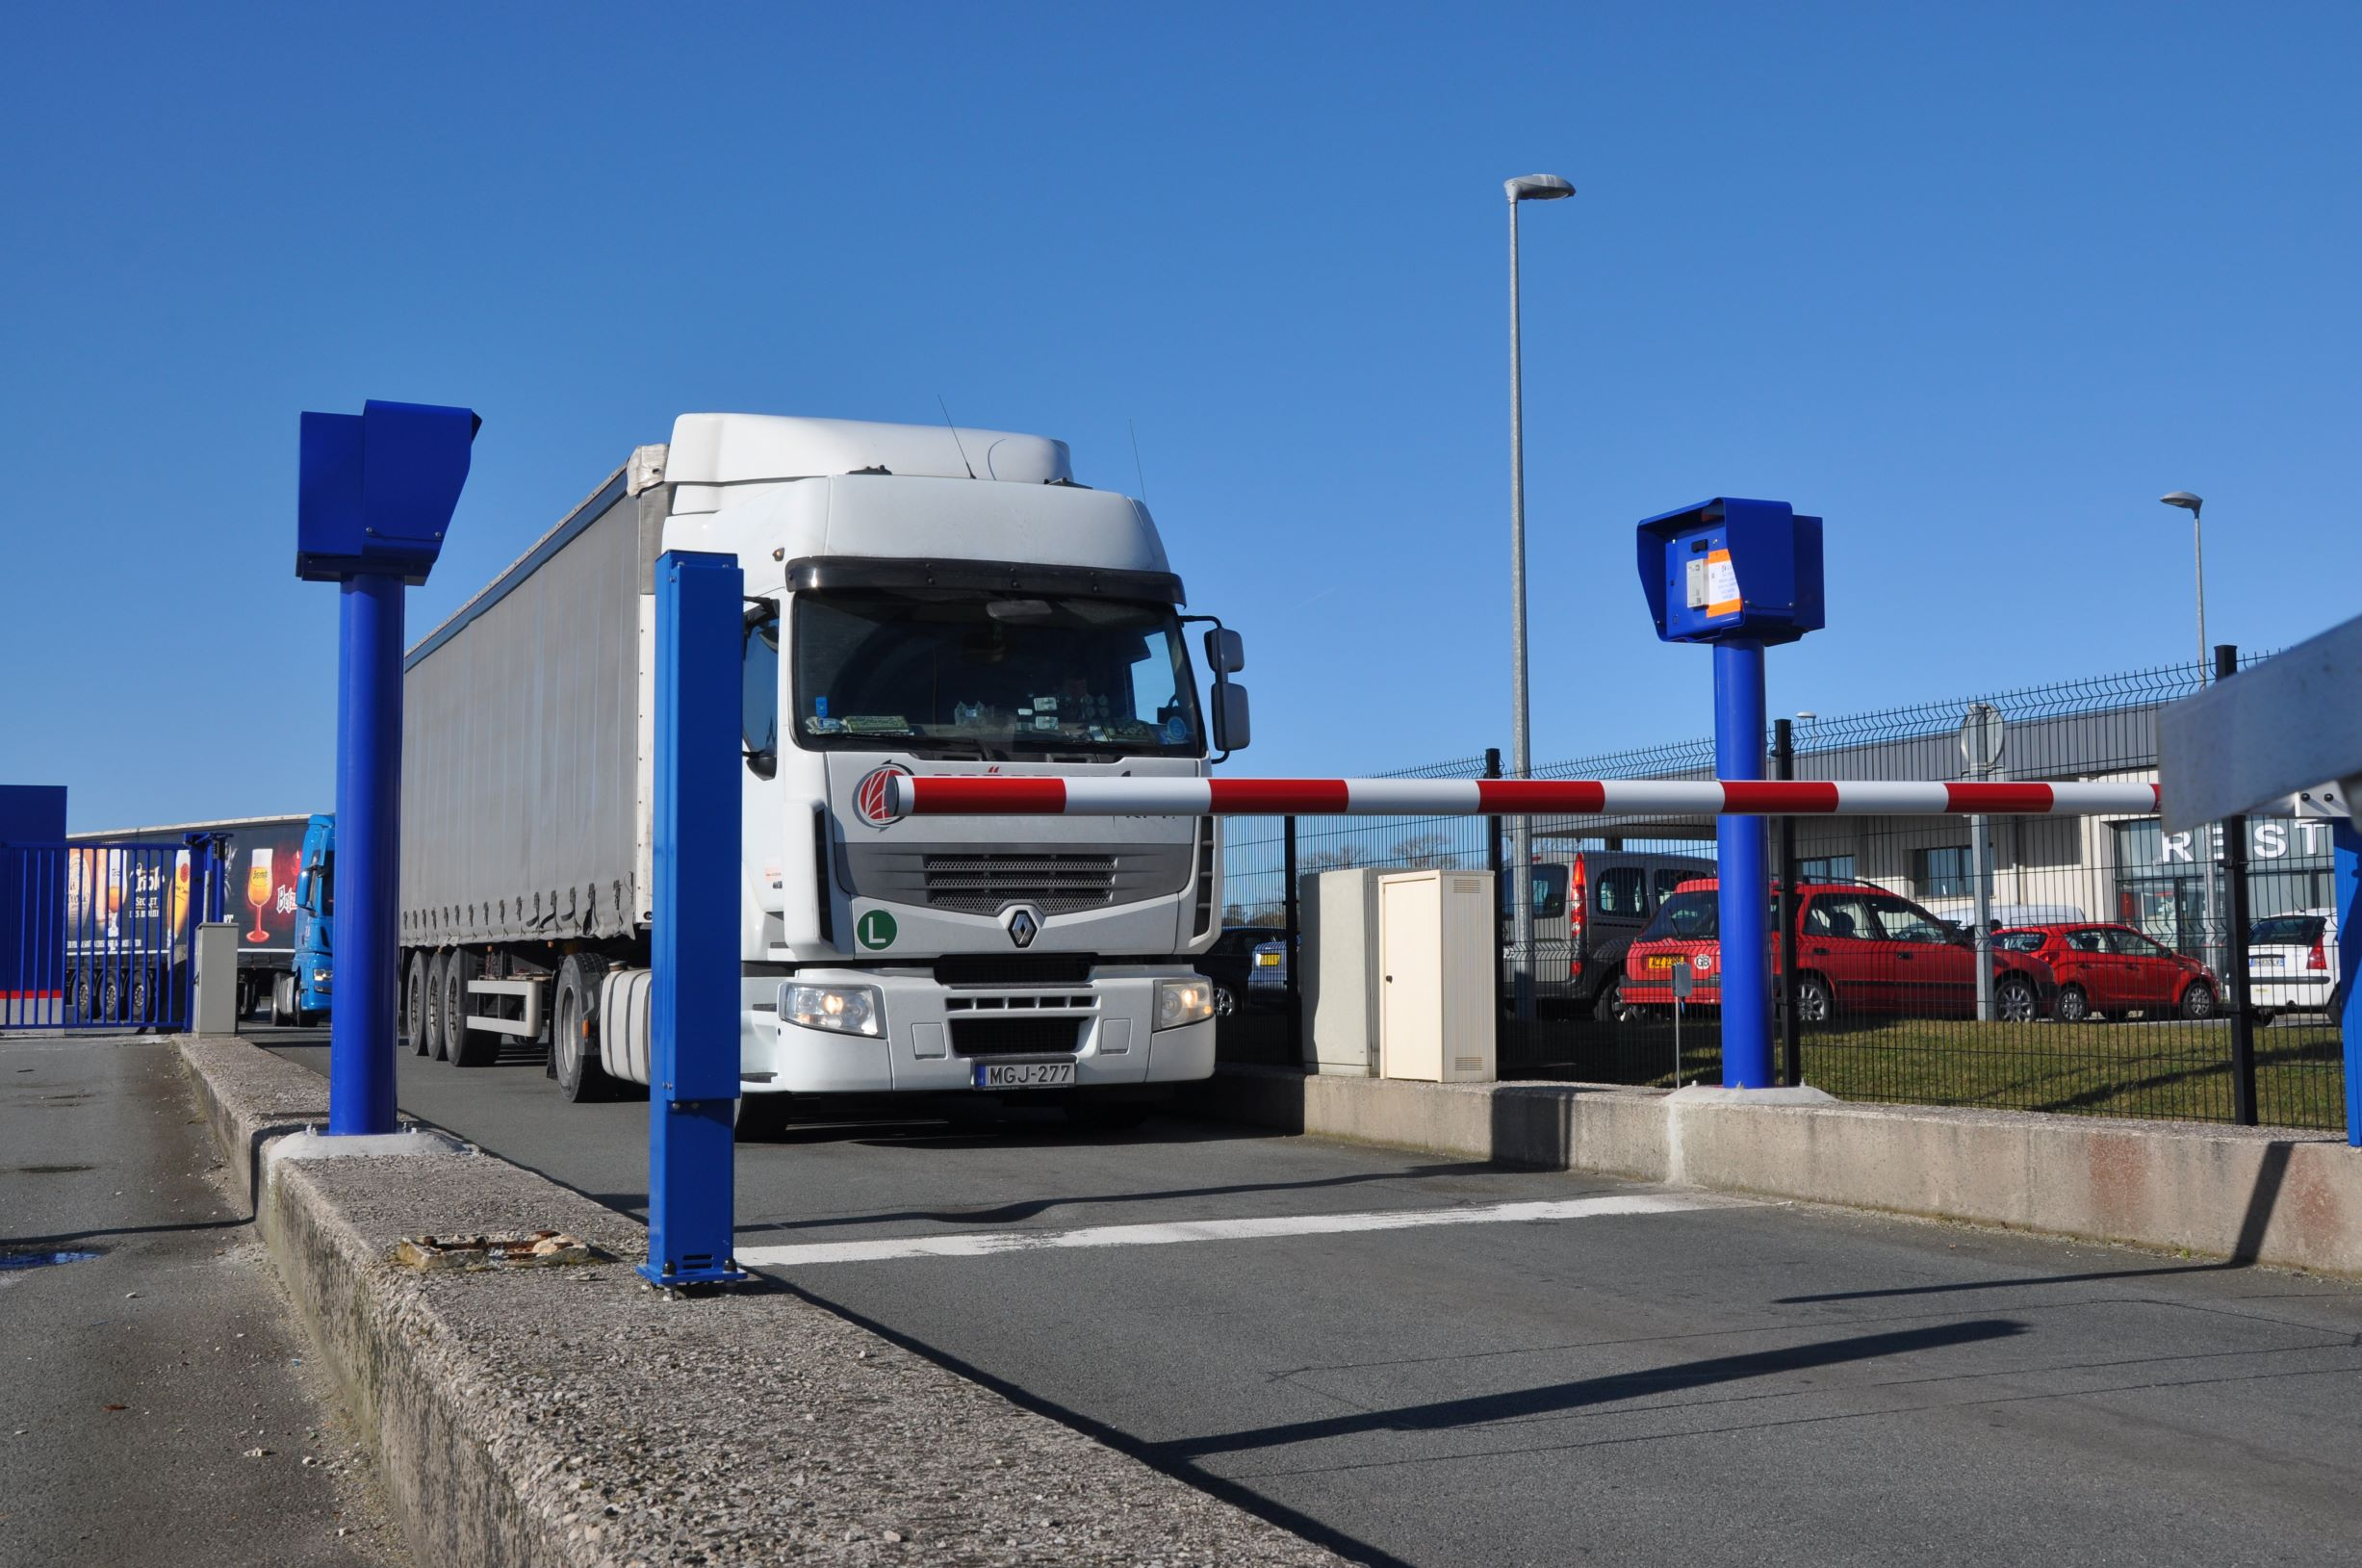 Smart truck parking system rolled out in Calais, France